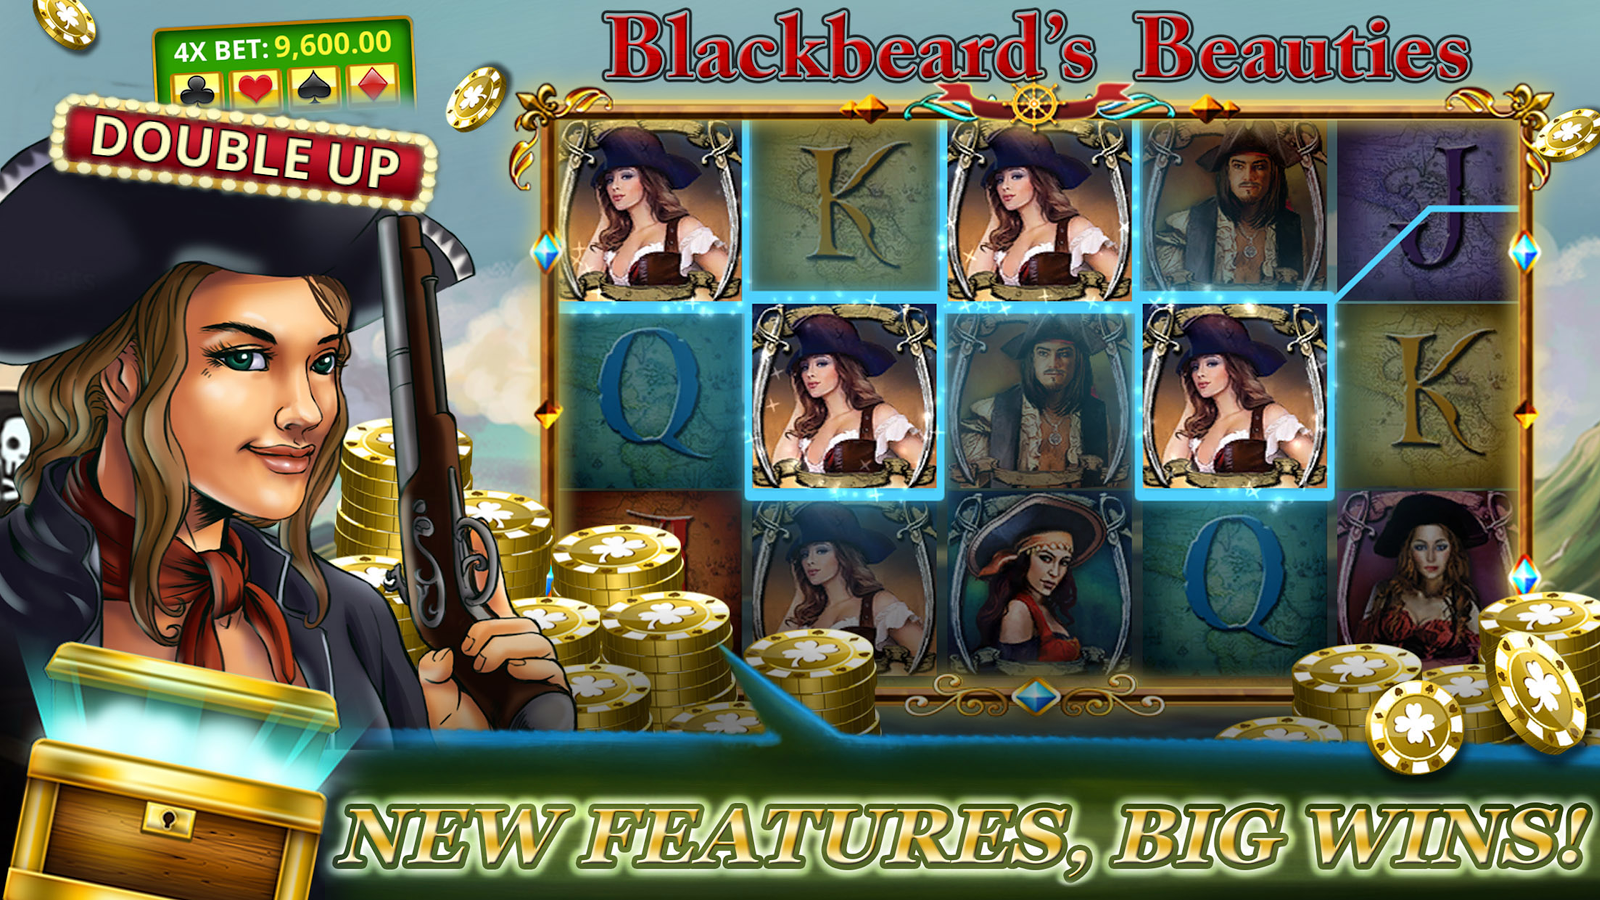 Lucky for You Slots - Play Online & Win Real Money